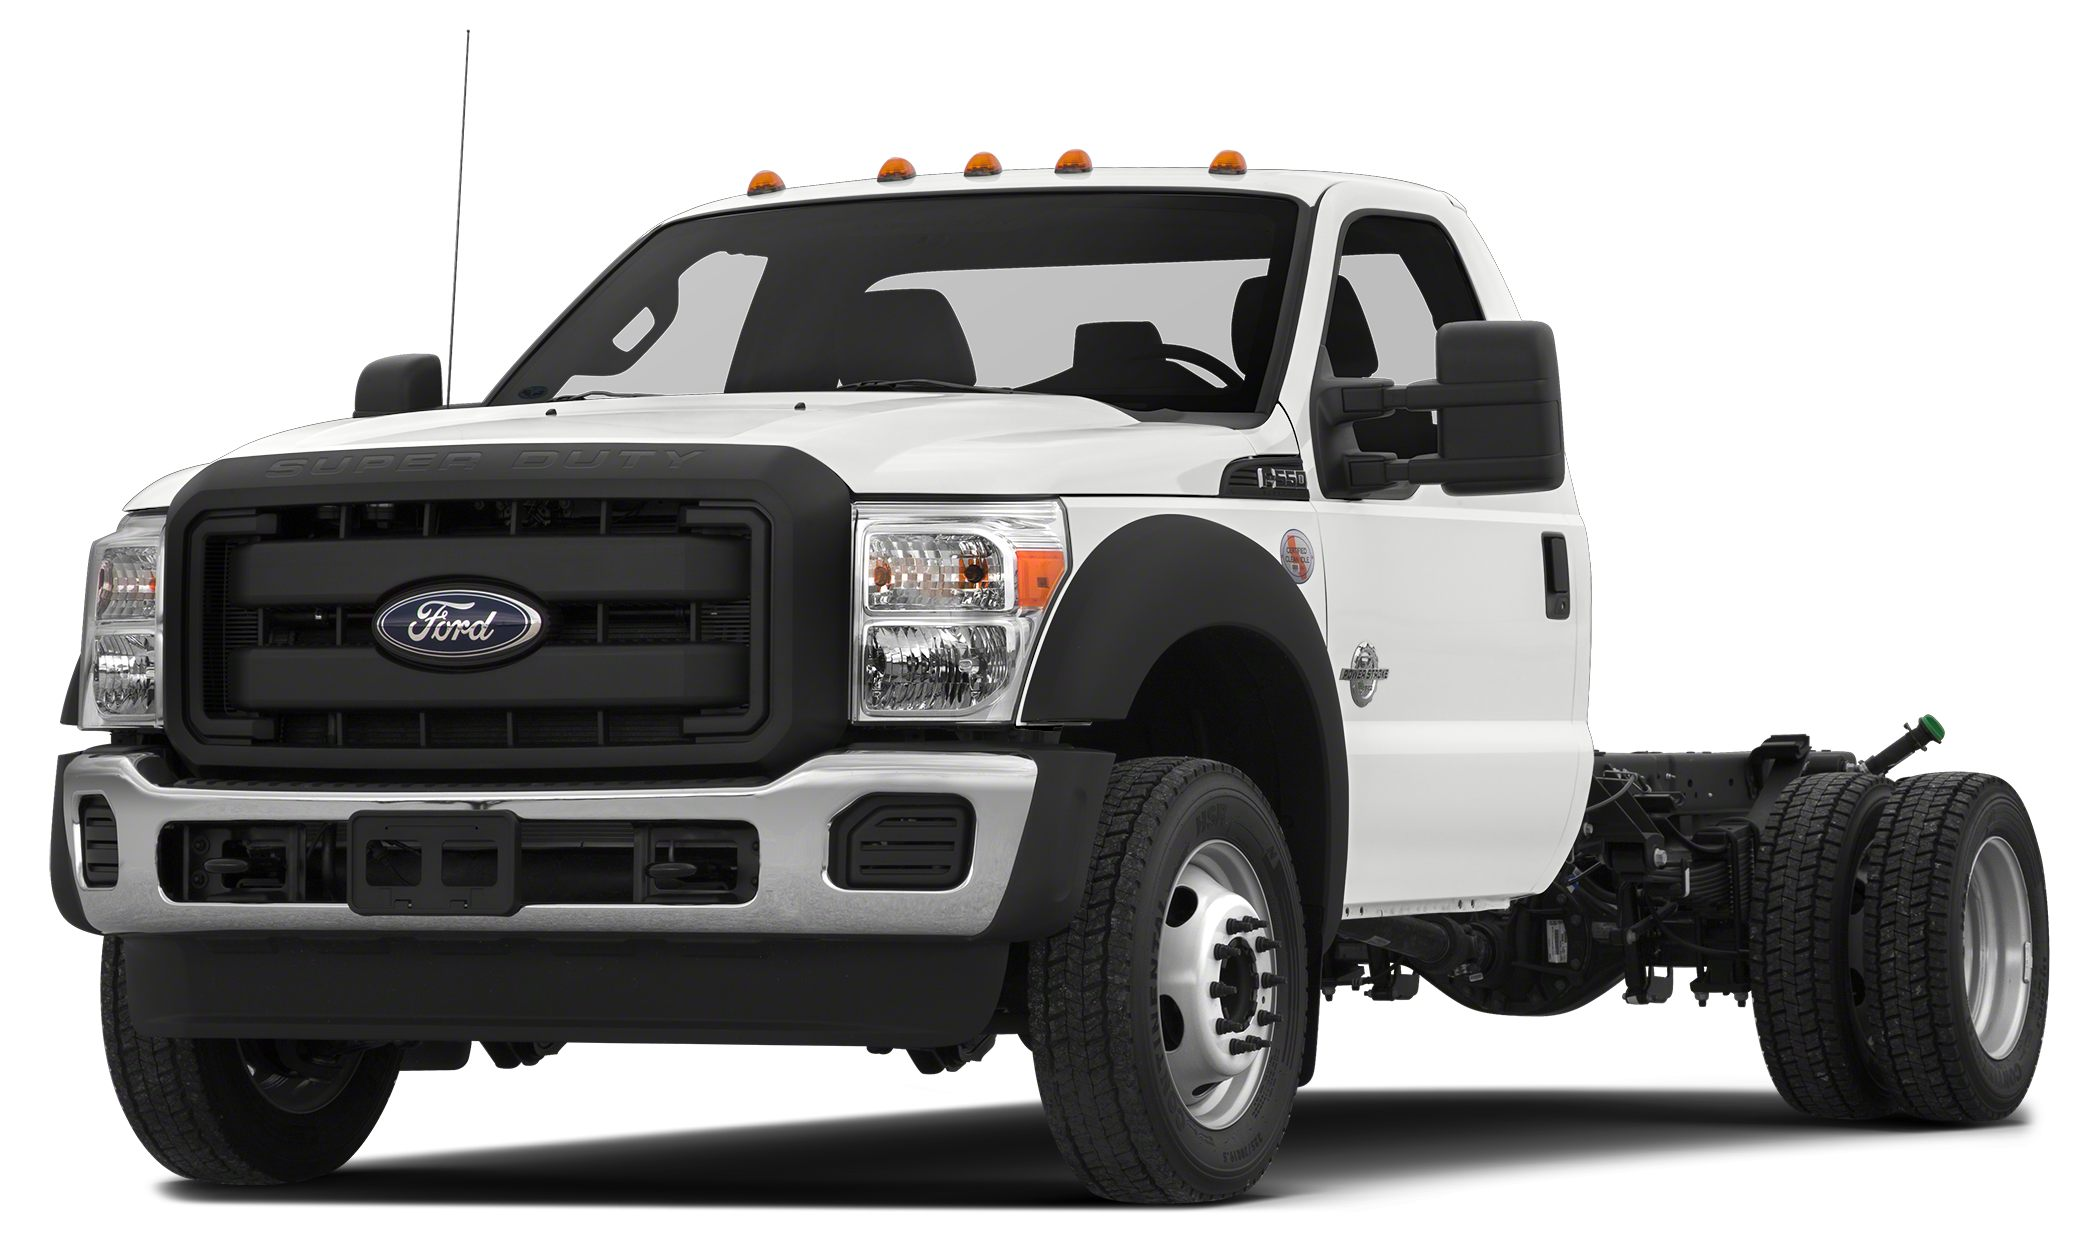 2016 Ford F-550 Chassis Cab